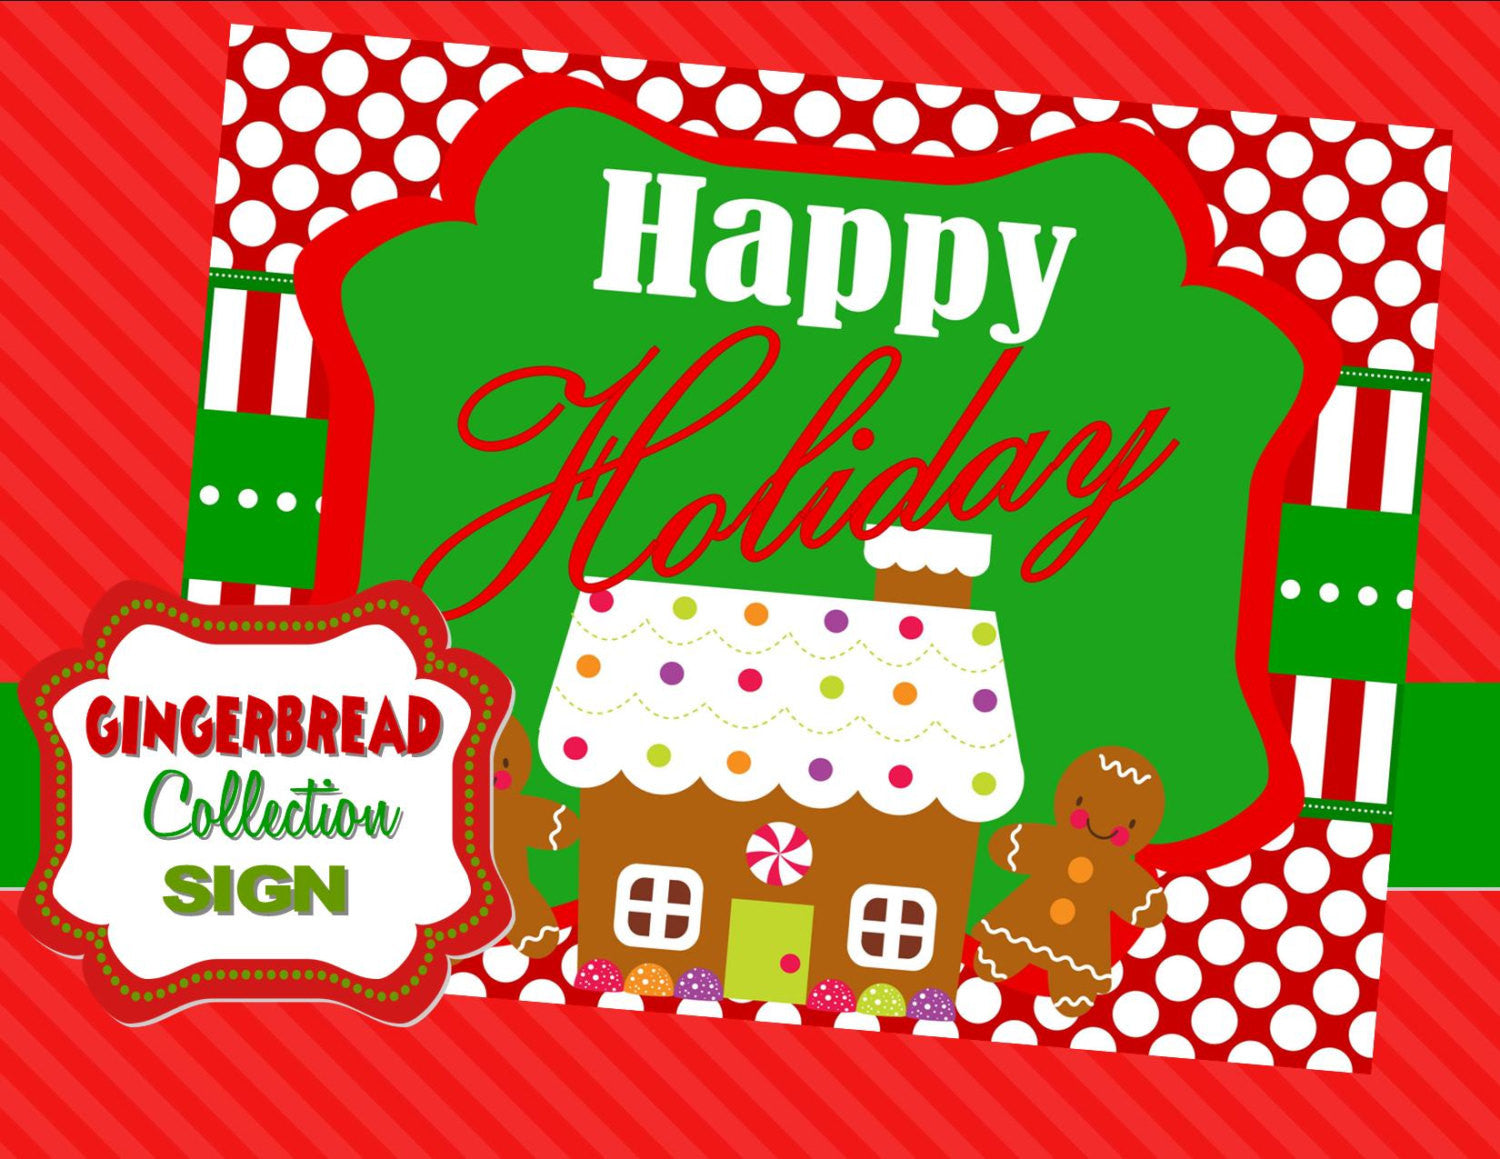 GINGERBREAD MAN CHRISTMAS-SIGN-PARTY-HOLIDAY